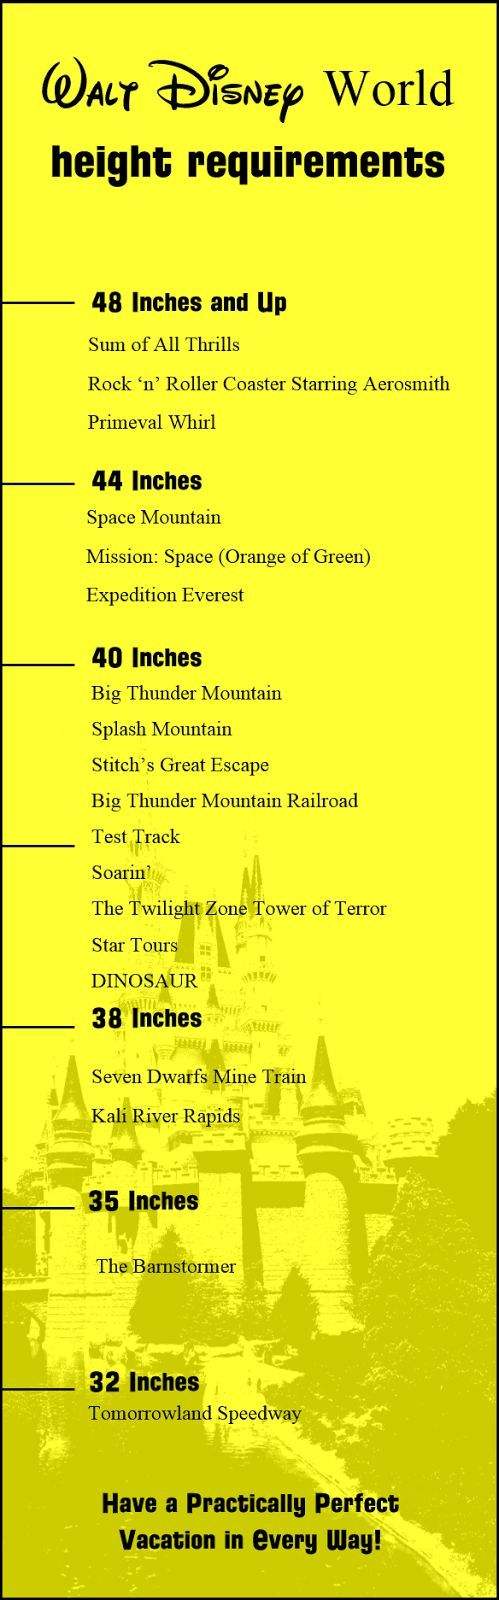 Post Has Height Requirements And Restrictions For Walt Disney World Parks Rides Attractions